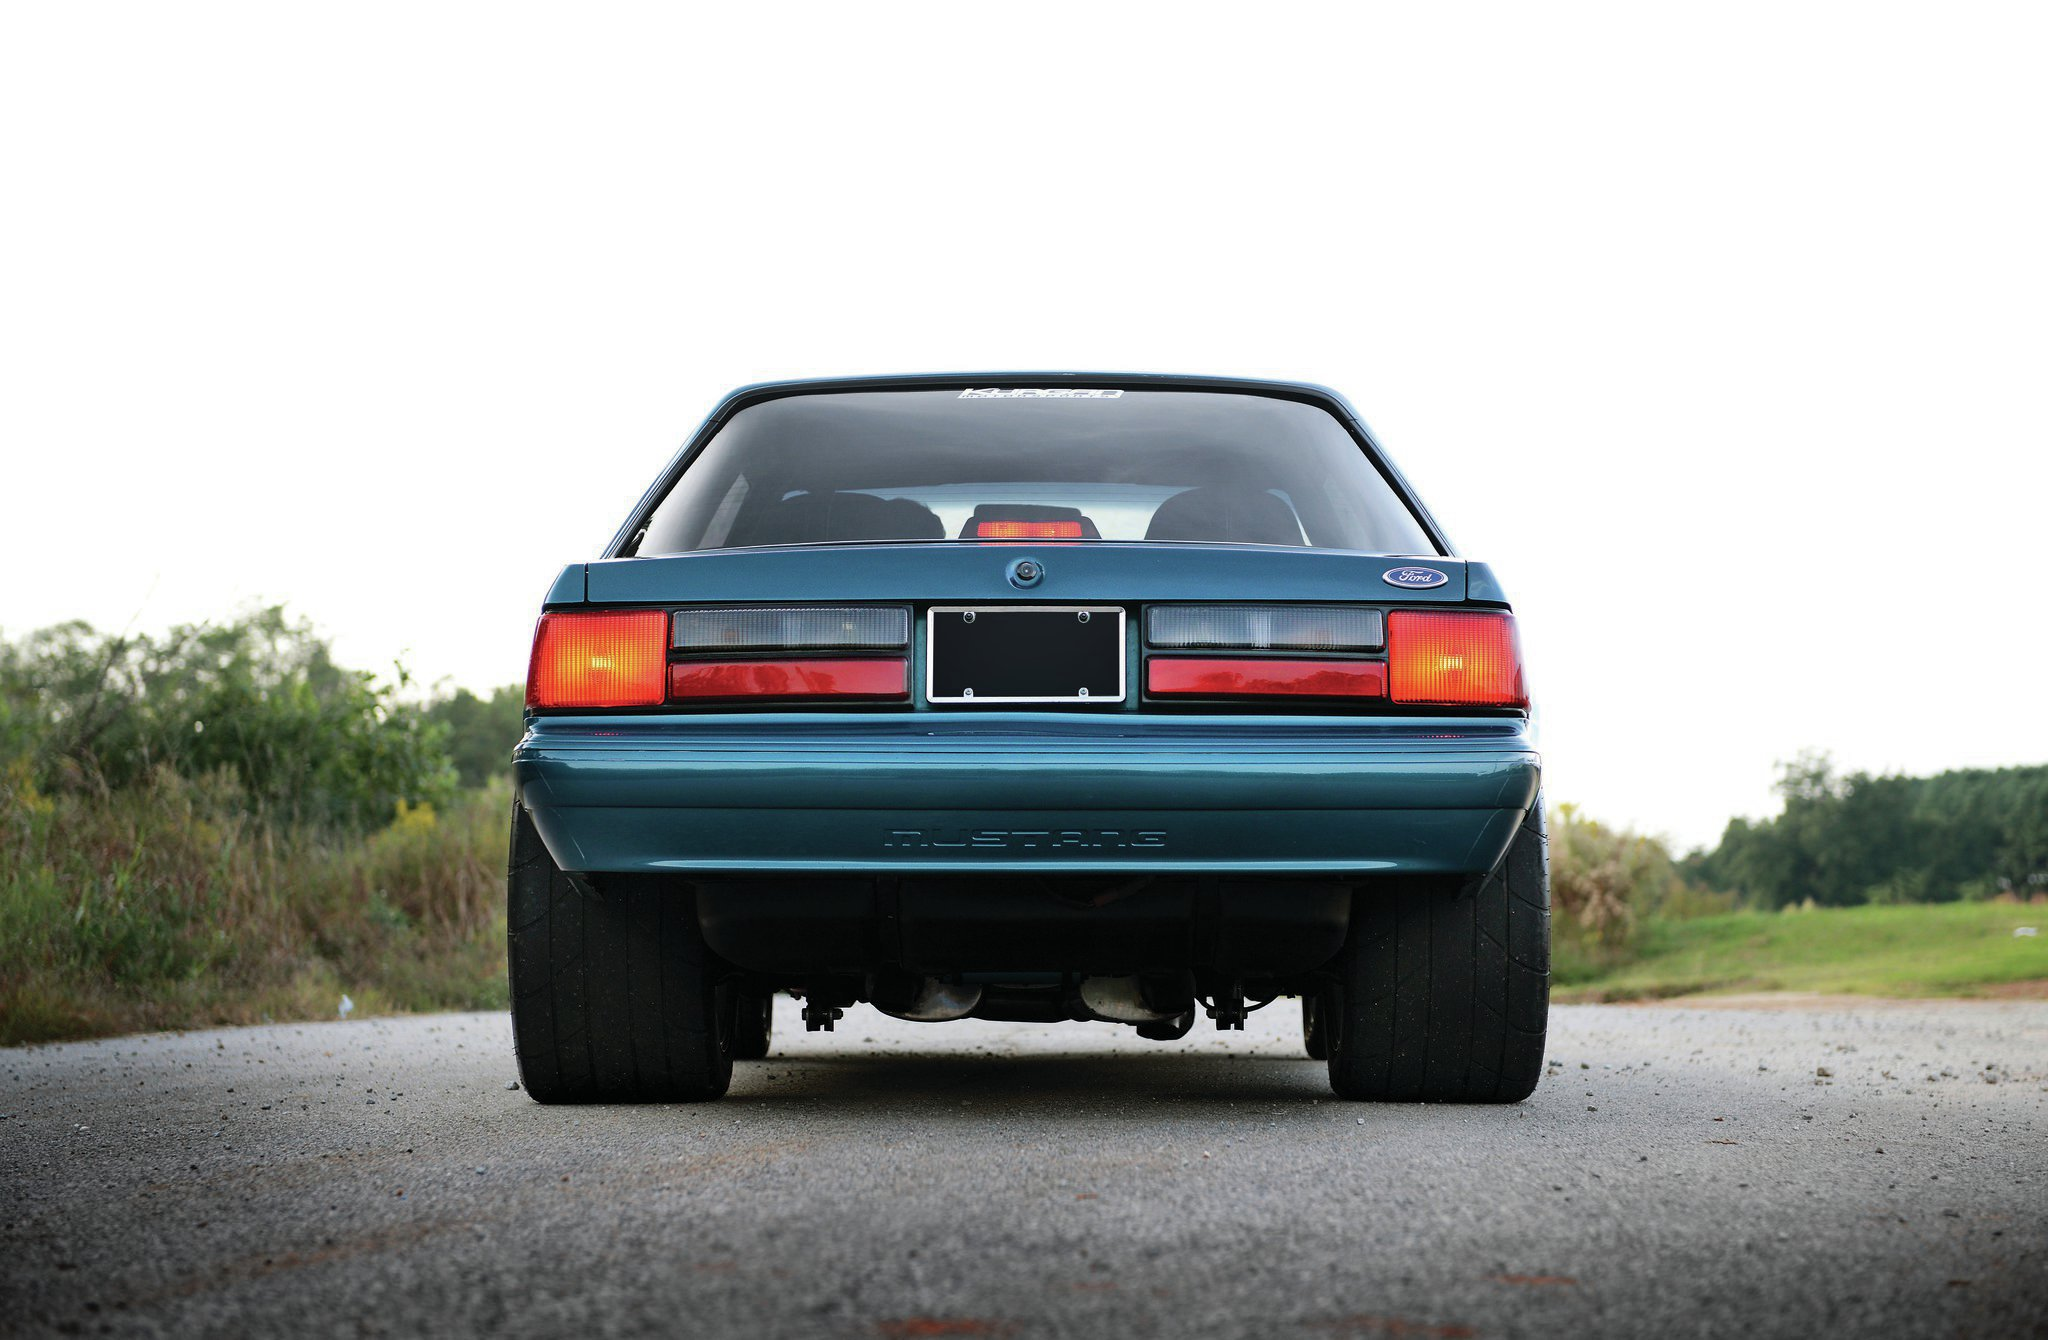 1993 Ford Mustang Lx Coupe Rear View